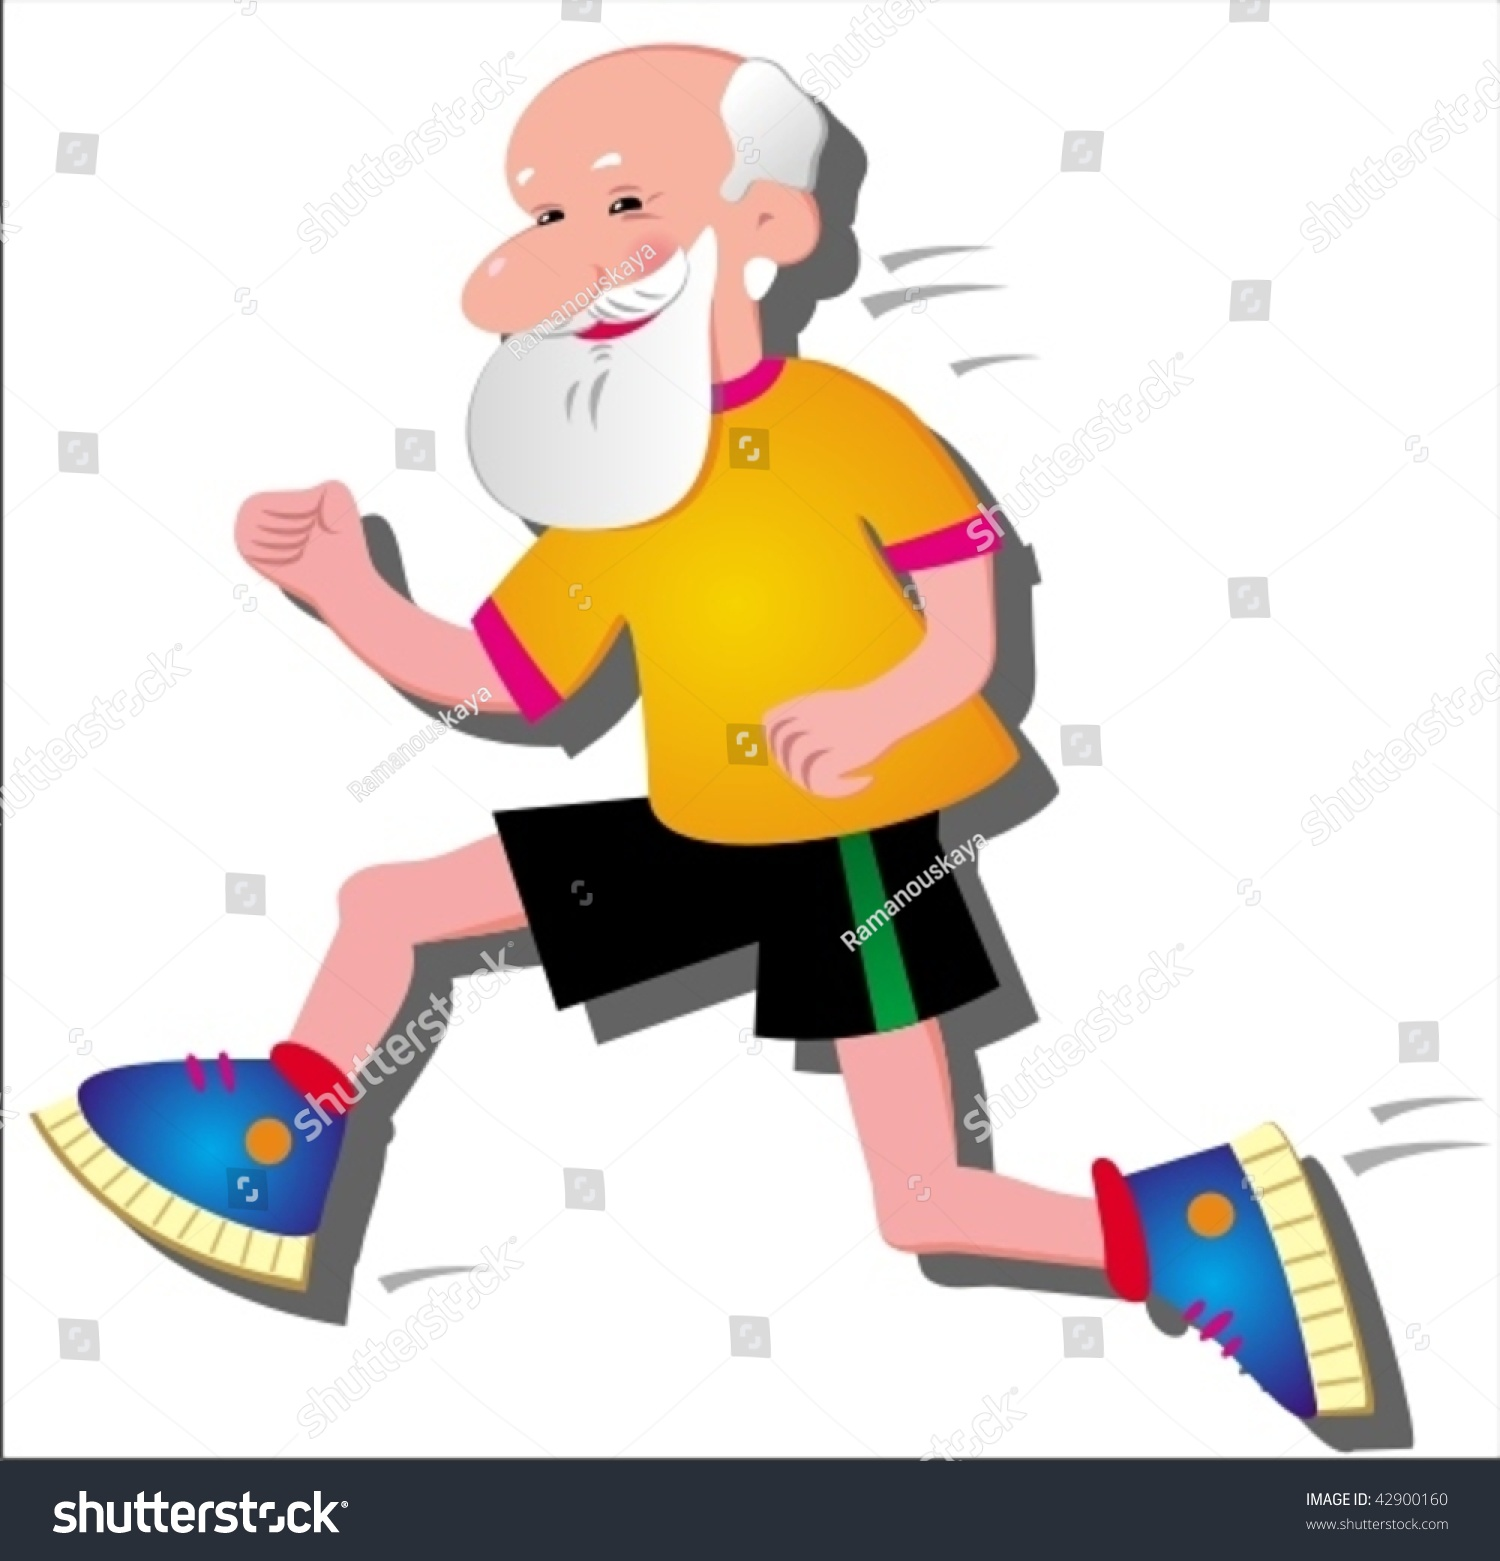 1046302344893020459 also Leader Is Teaching People 7941417 in addition Hsbc Monstax in addition Build Over moreover Stock Vector Vector Image Of Funny Running Old Man. on running man drawing